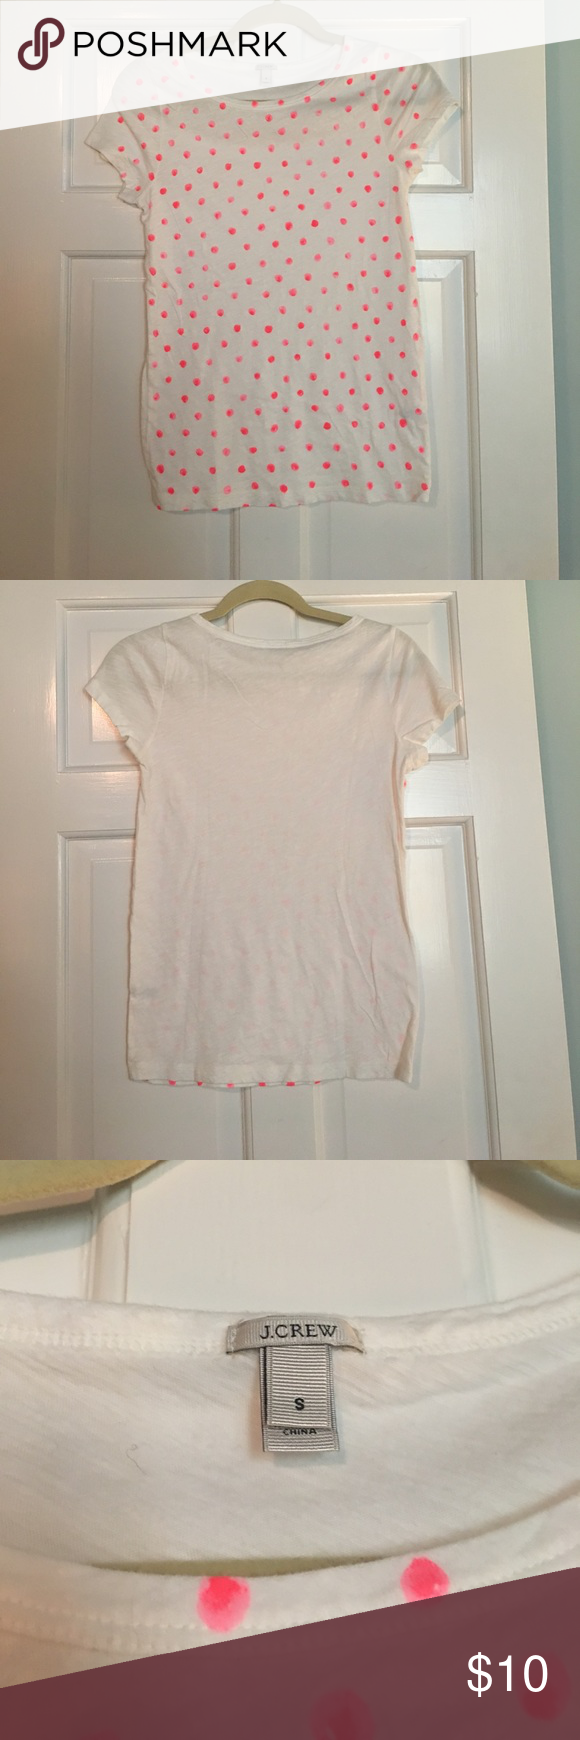 💕J. Crew Neon Pink Polka Dot Top💕 Worn twice!! Very comfortable and perfect for a casual look! No polkadots on back of shirt. Fabulous condition!! J. Crew Tops Tees - Short Sleeve